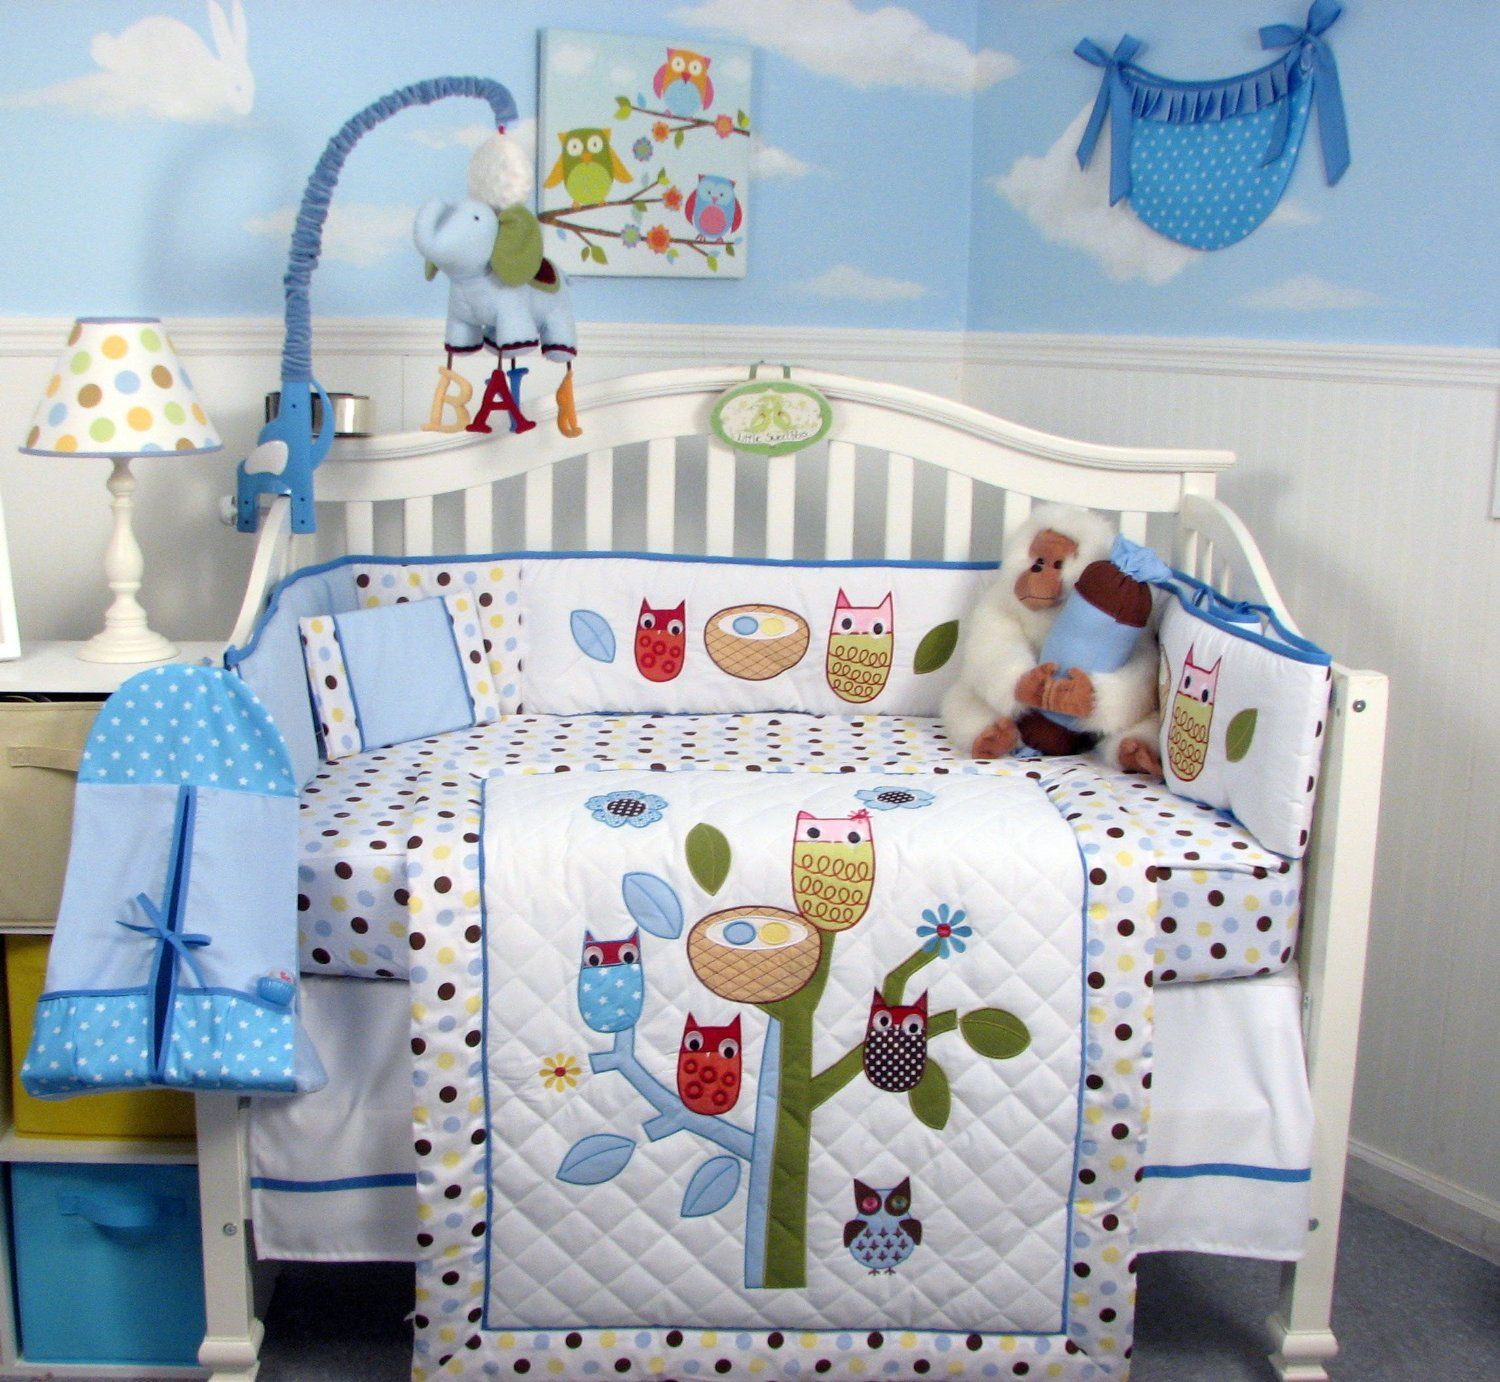 Check out these adorable baby boy owl crib bedding sets me